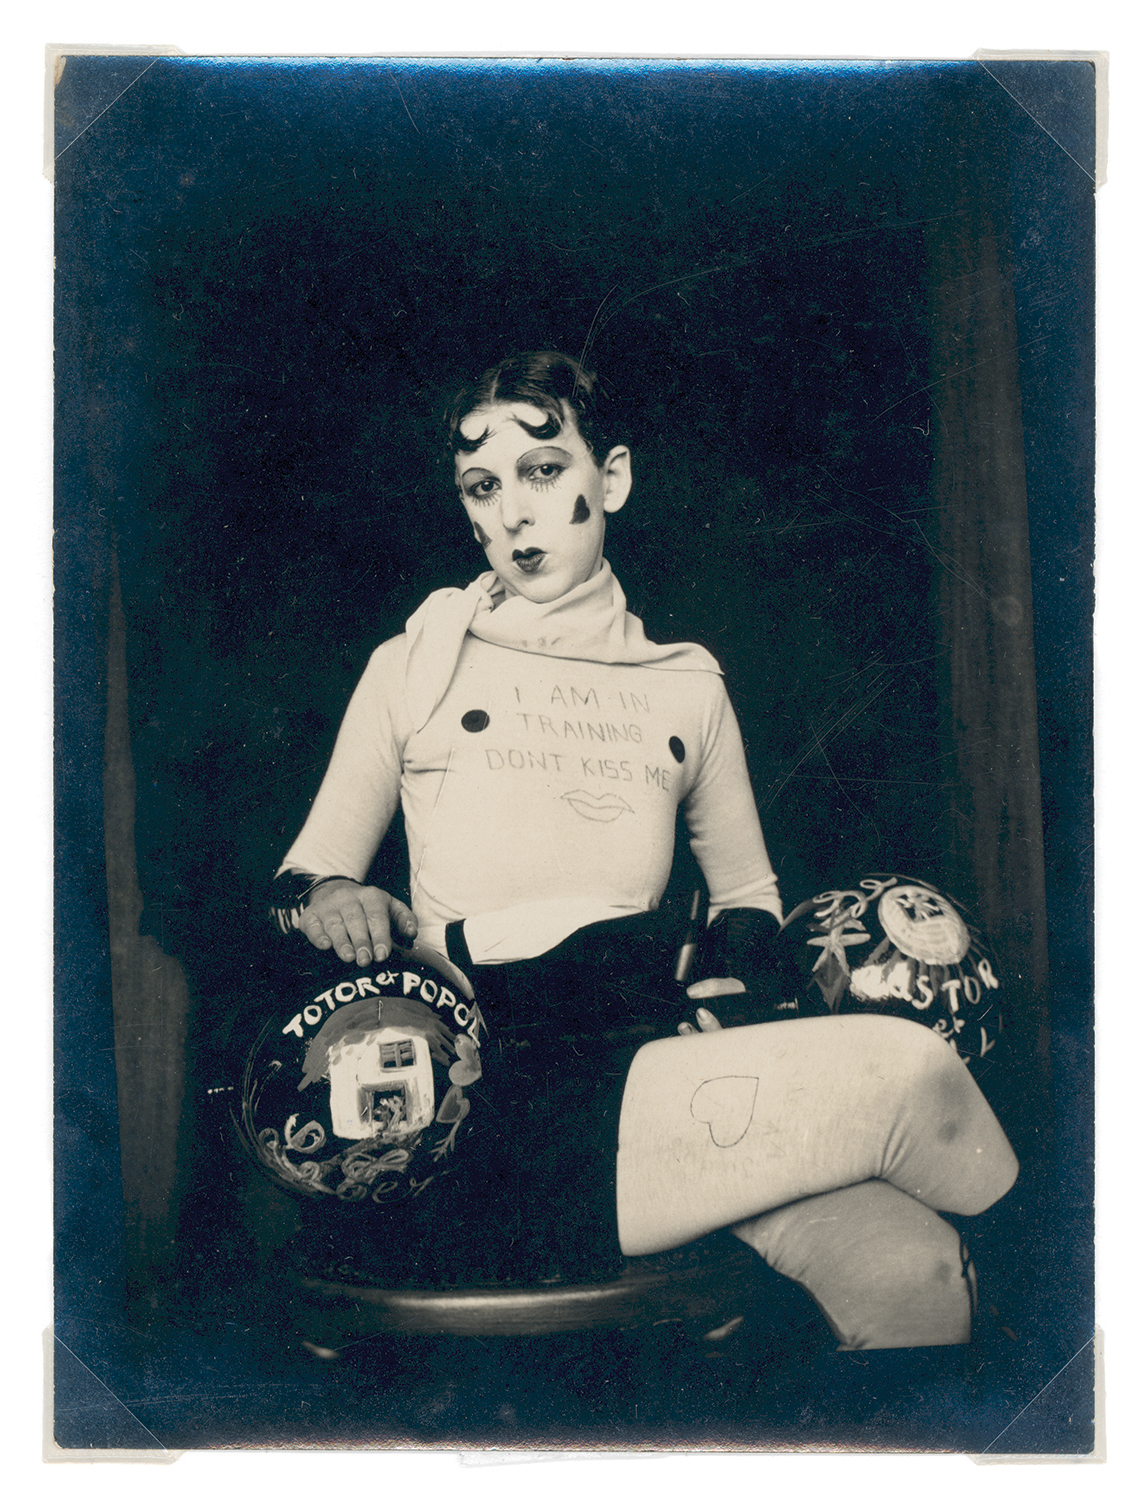 Claude Cahun (Lucy Schwob) and Marcel Moore (Suzanne Malherbe), 'Untitled' [I am in training don't kiss me], 1927.